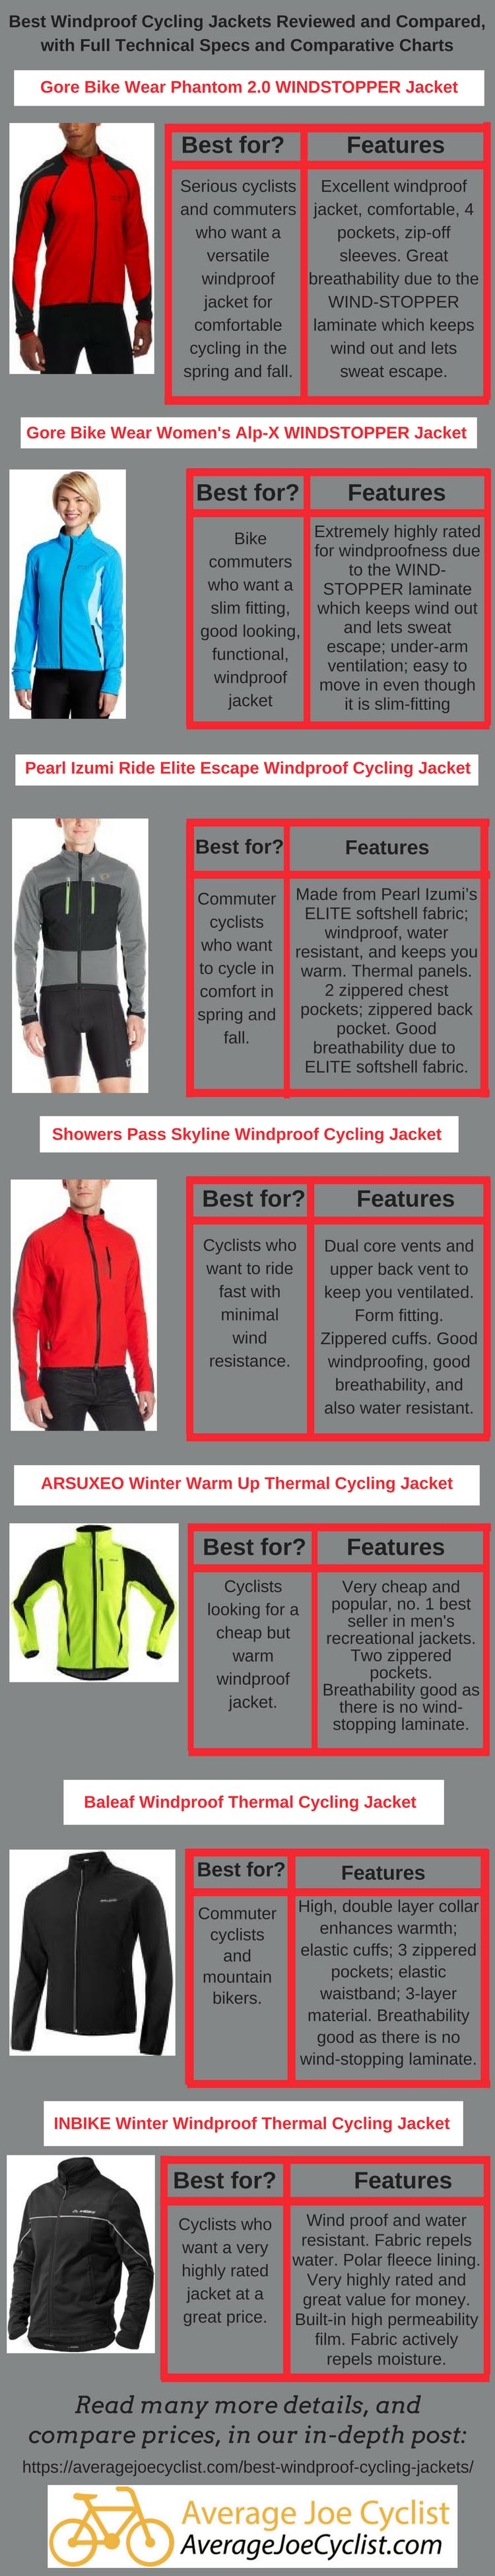 Best windproof cycling jackets. Share the Love by Pinning this Graphic!